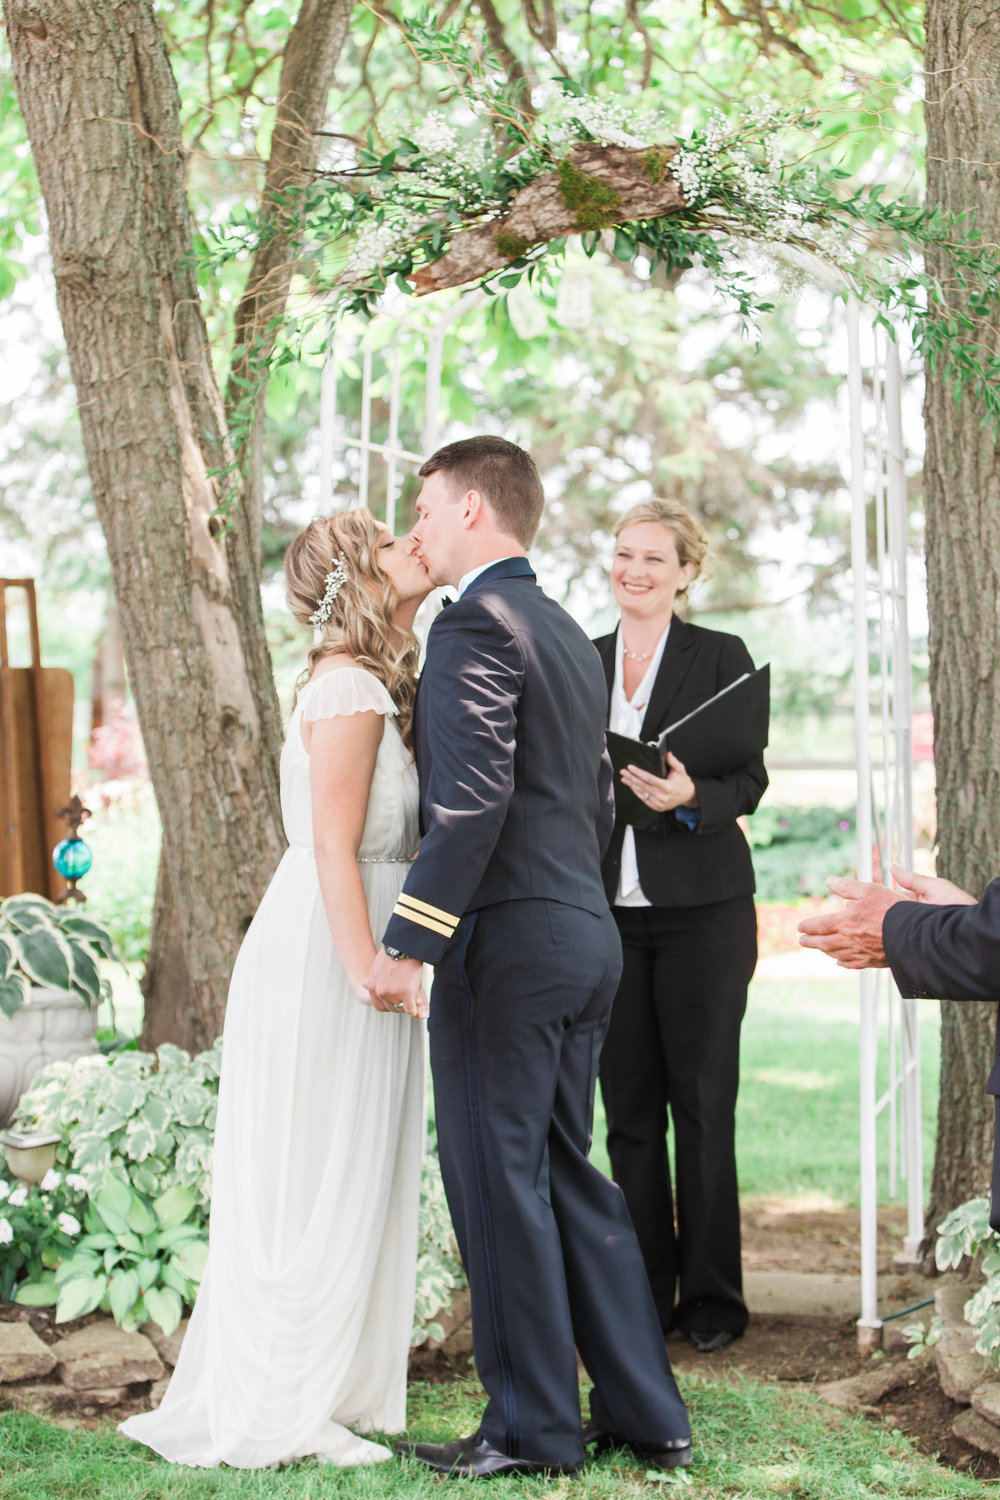 First kiss at intimate outdoor wedding